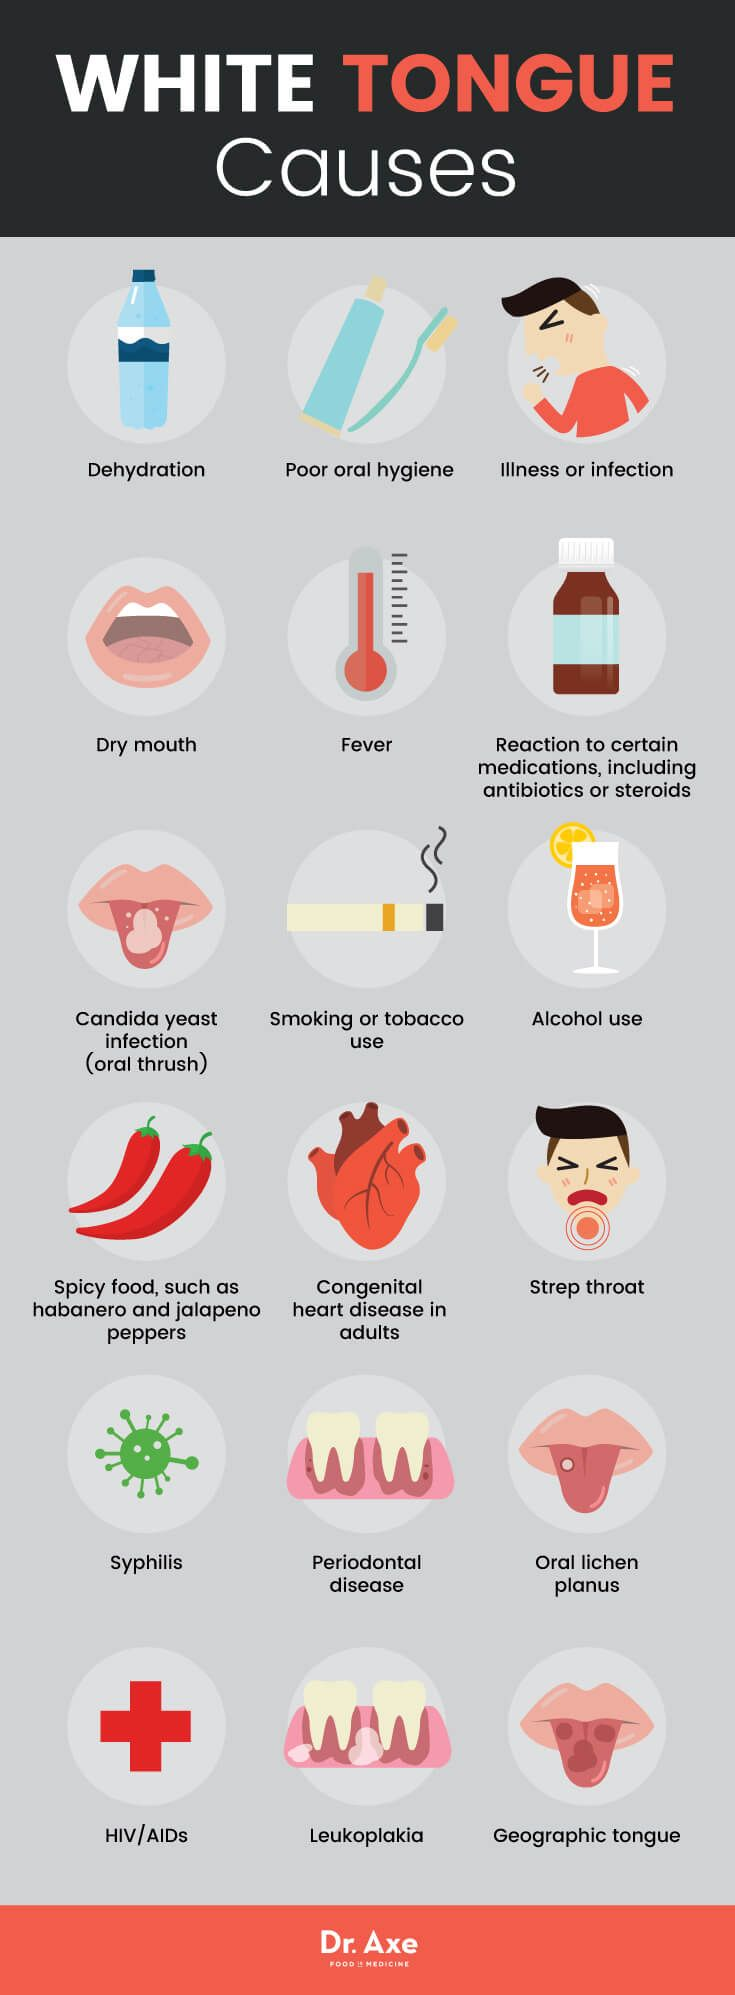 White coating on the adults tongue: causes and treatment